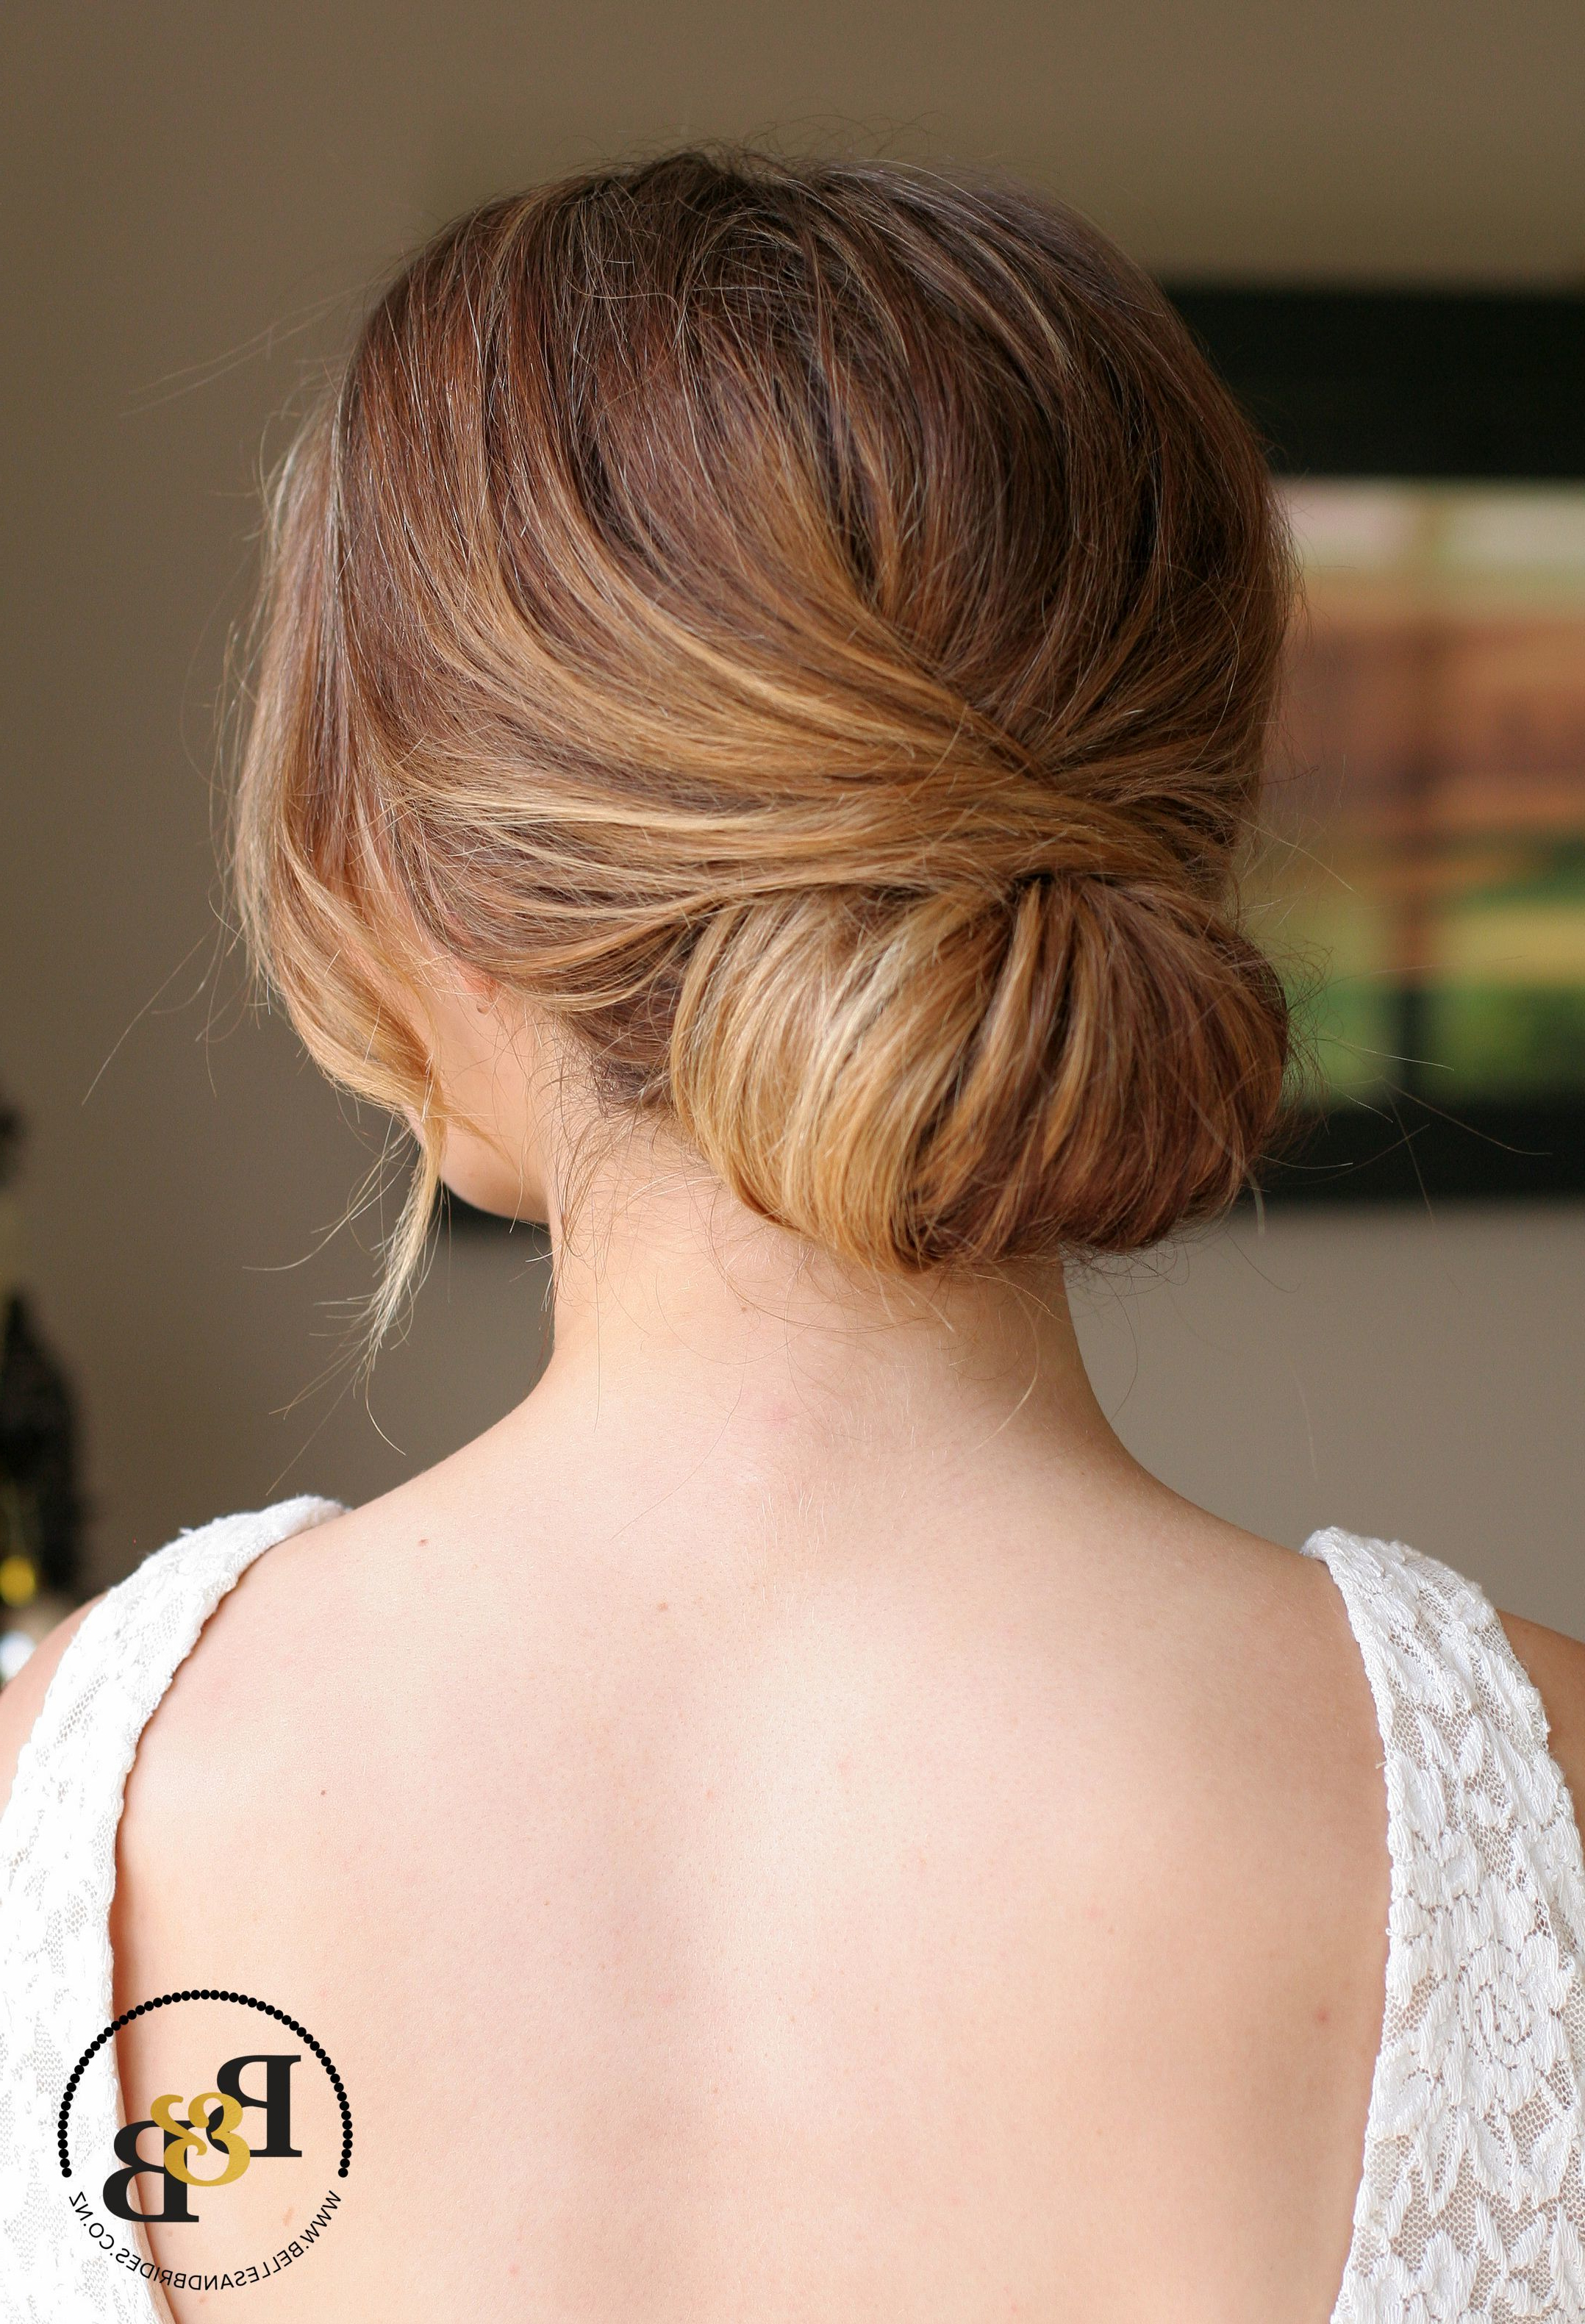 Current Embellished Twisted Bun For Brides For Wedding Hair Low Chignon / Casual Bridal Chignon / Soft Romantic (View 9 of 20)